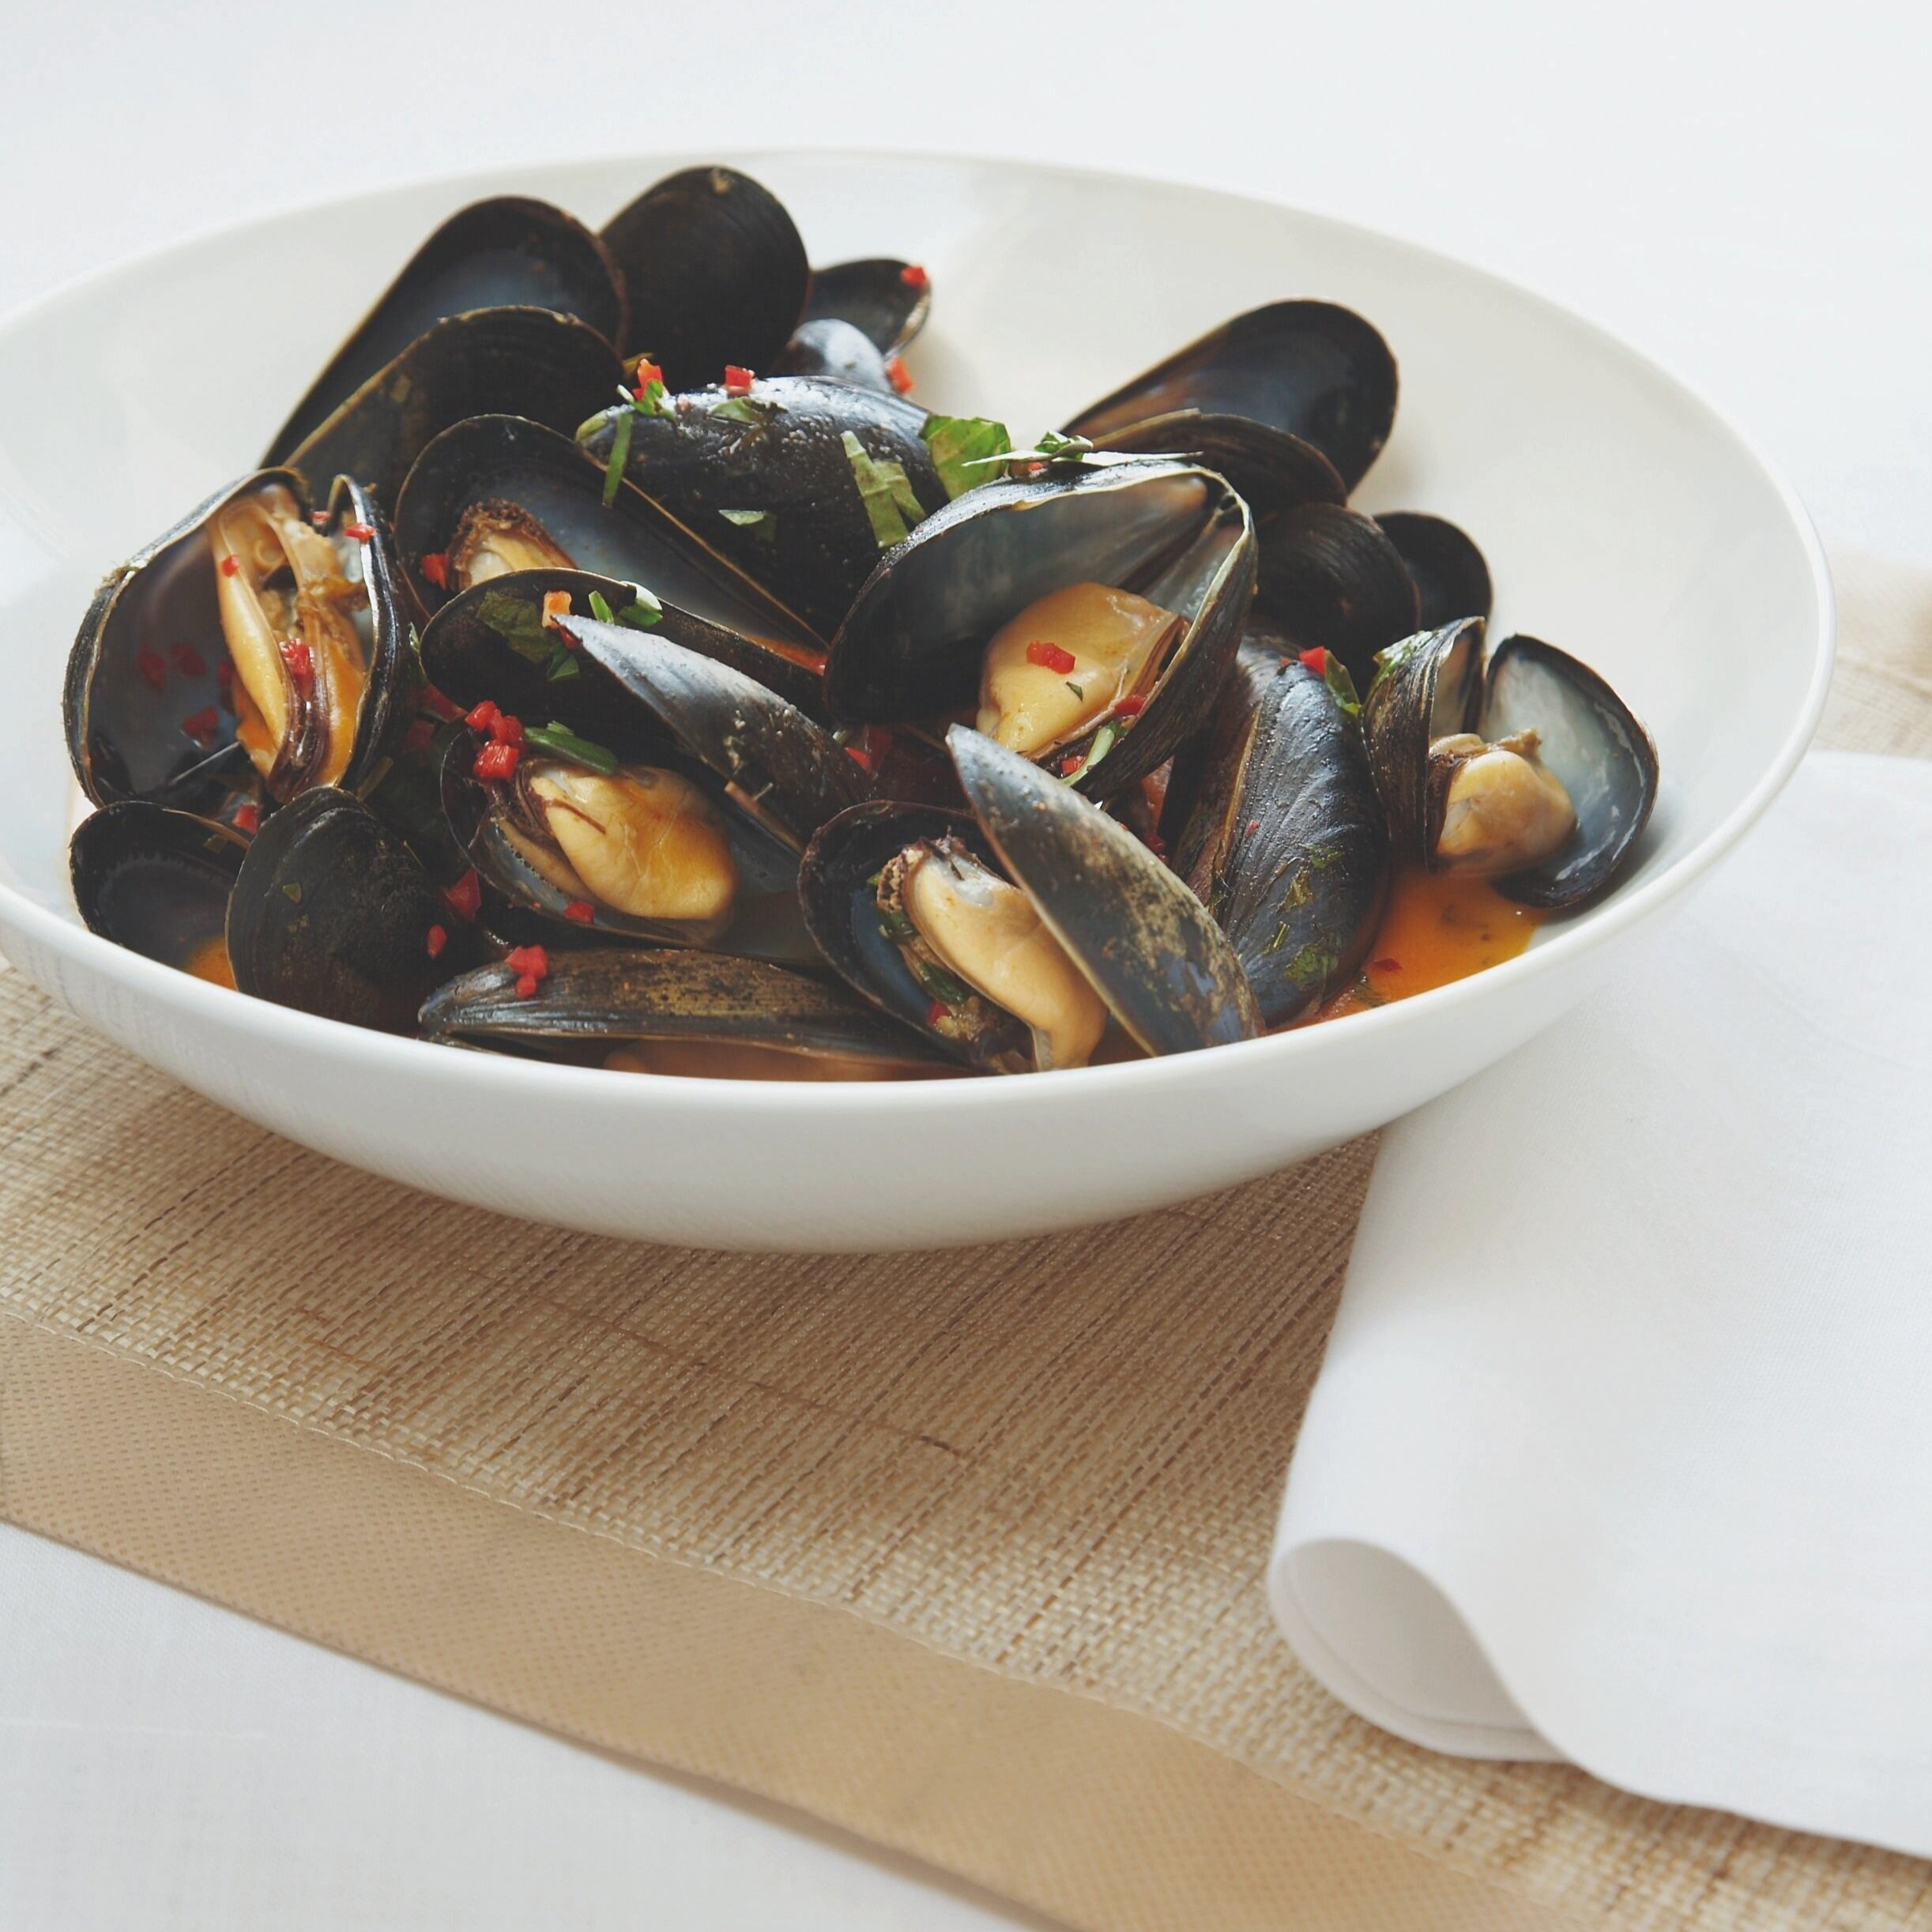 Coconut steamed mussels with lemongrass and red curry